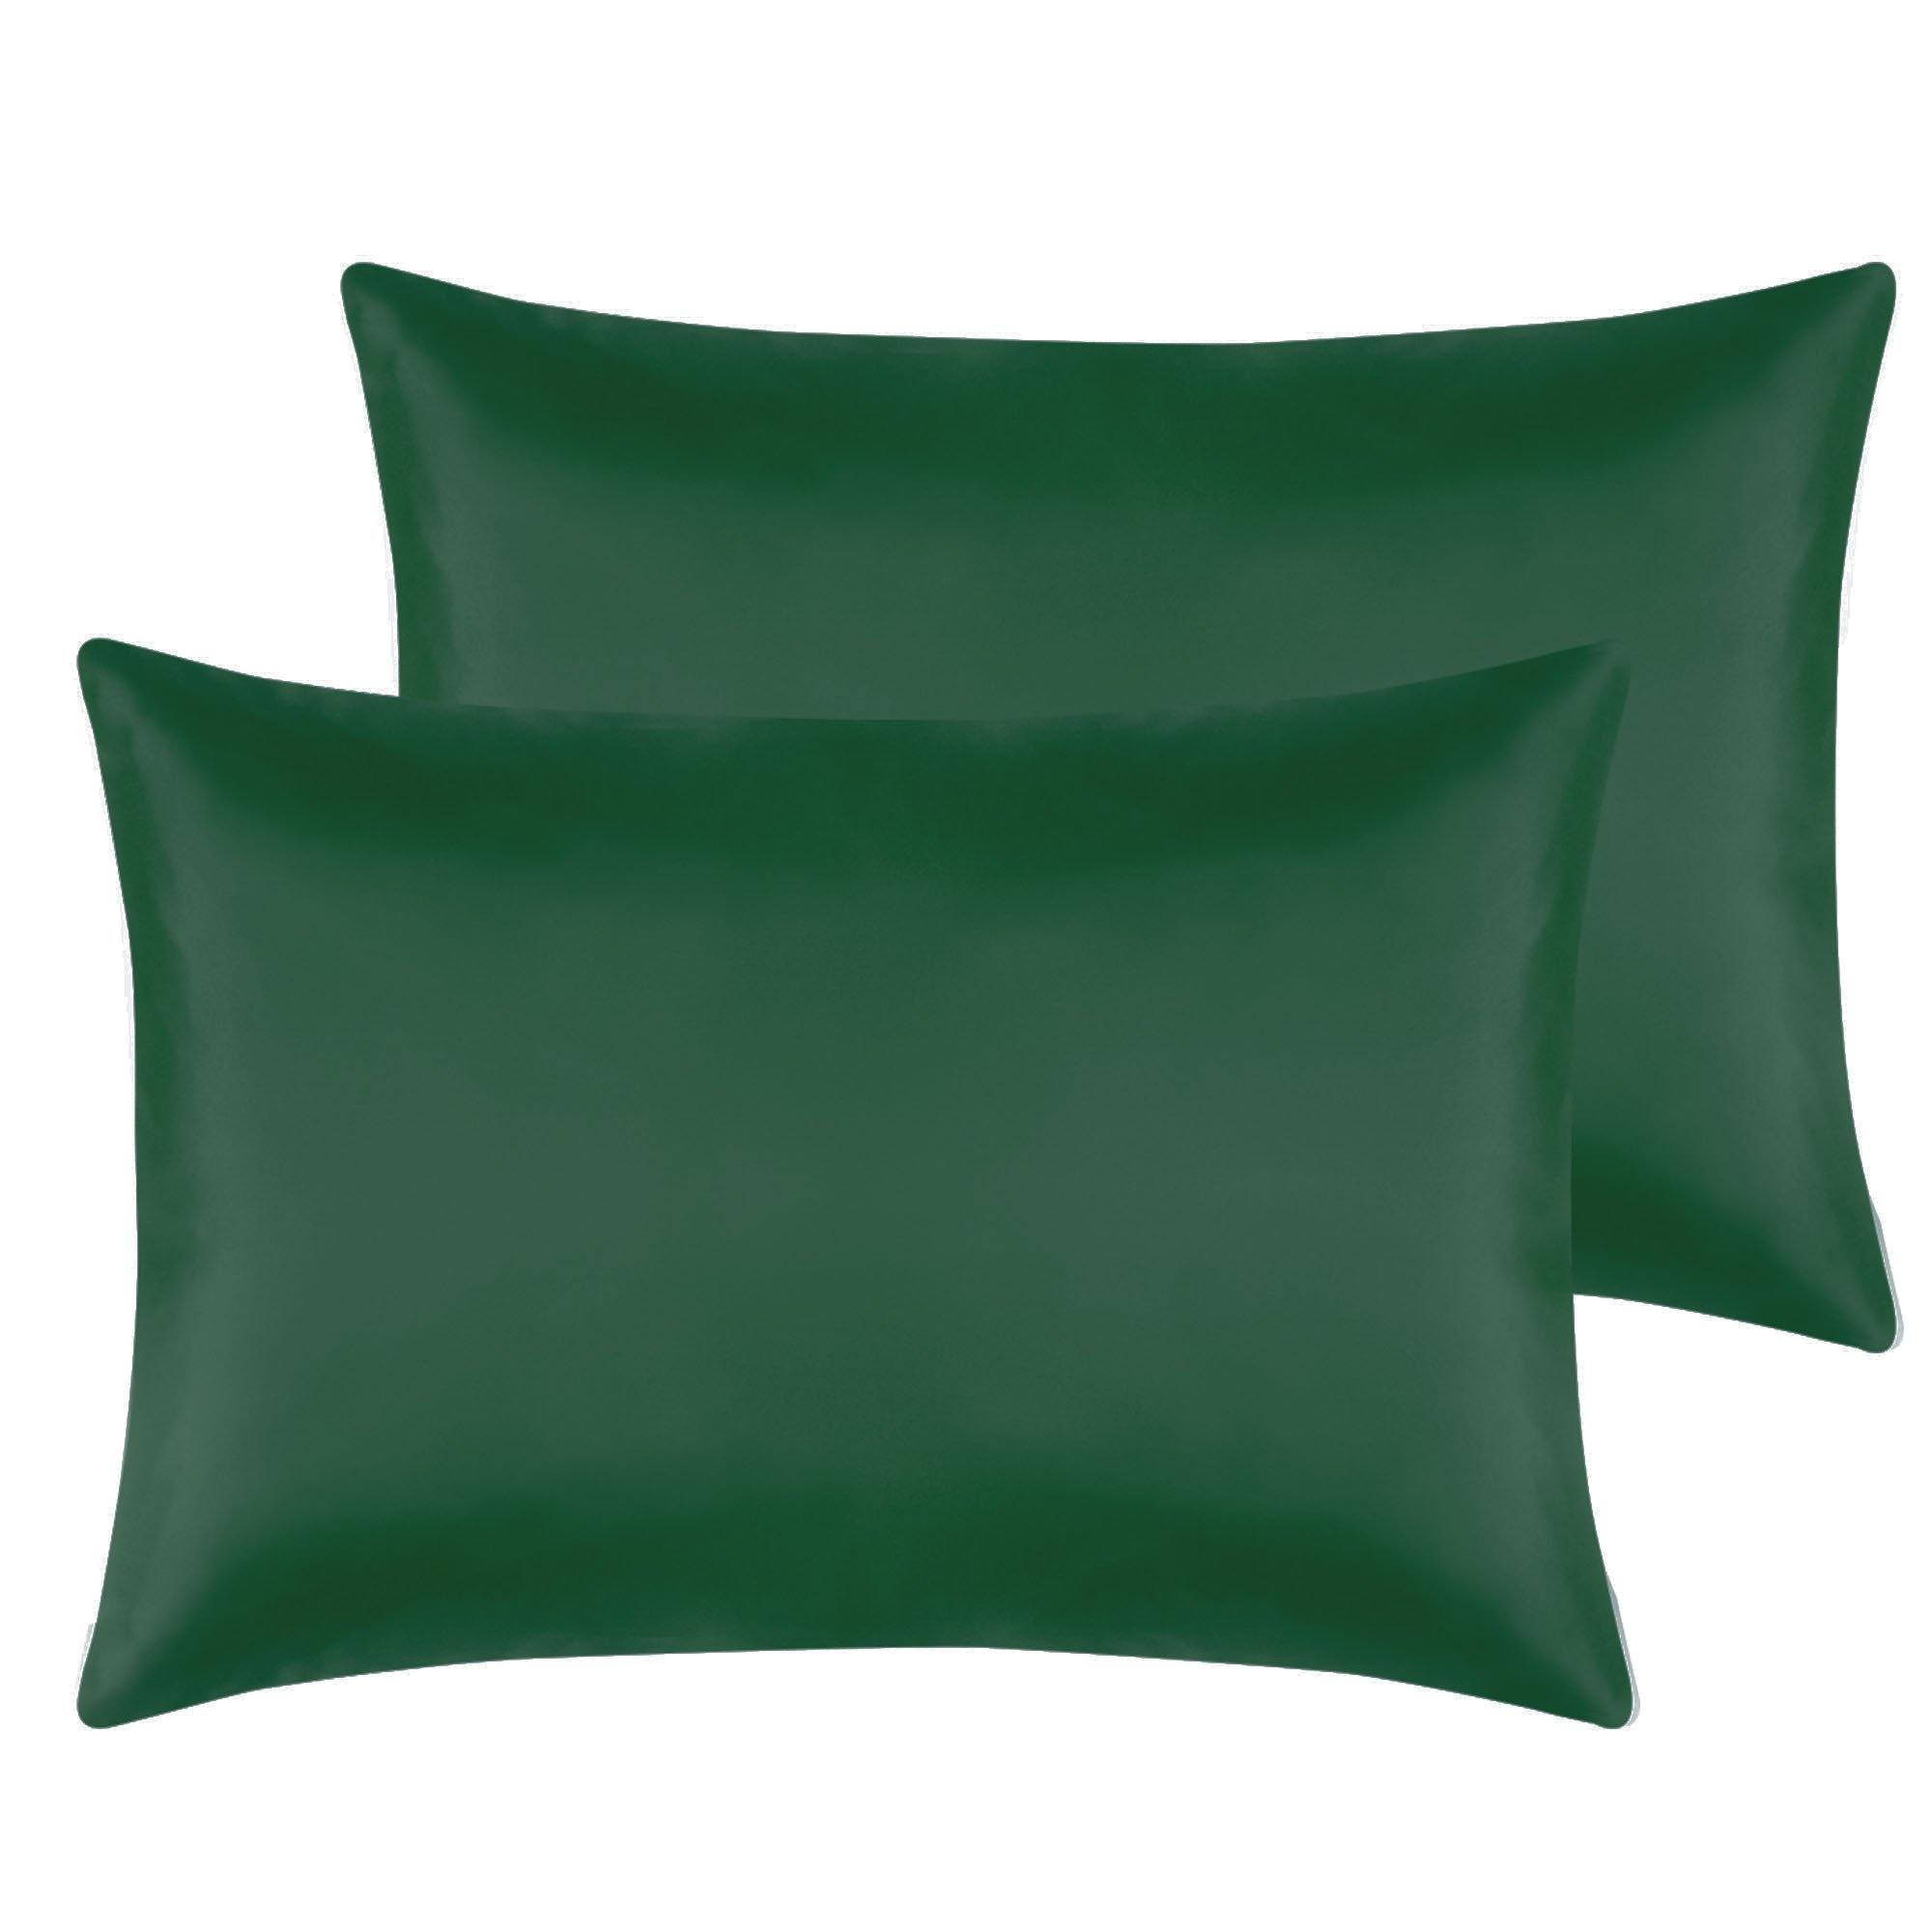 Ntbay Silky Satin Toddler Travel Pillowcases Set Of 2